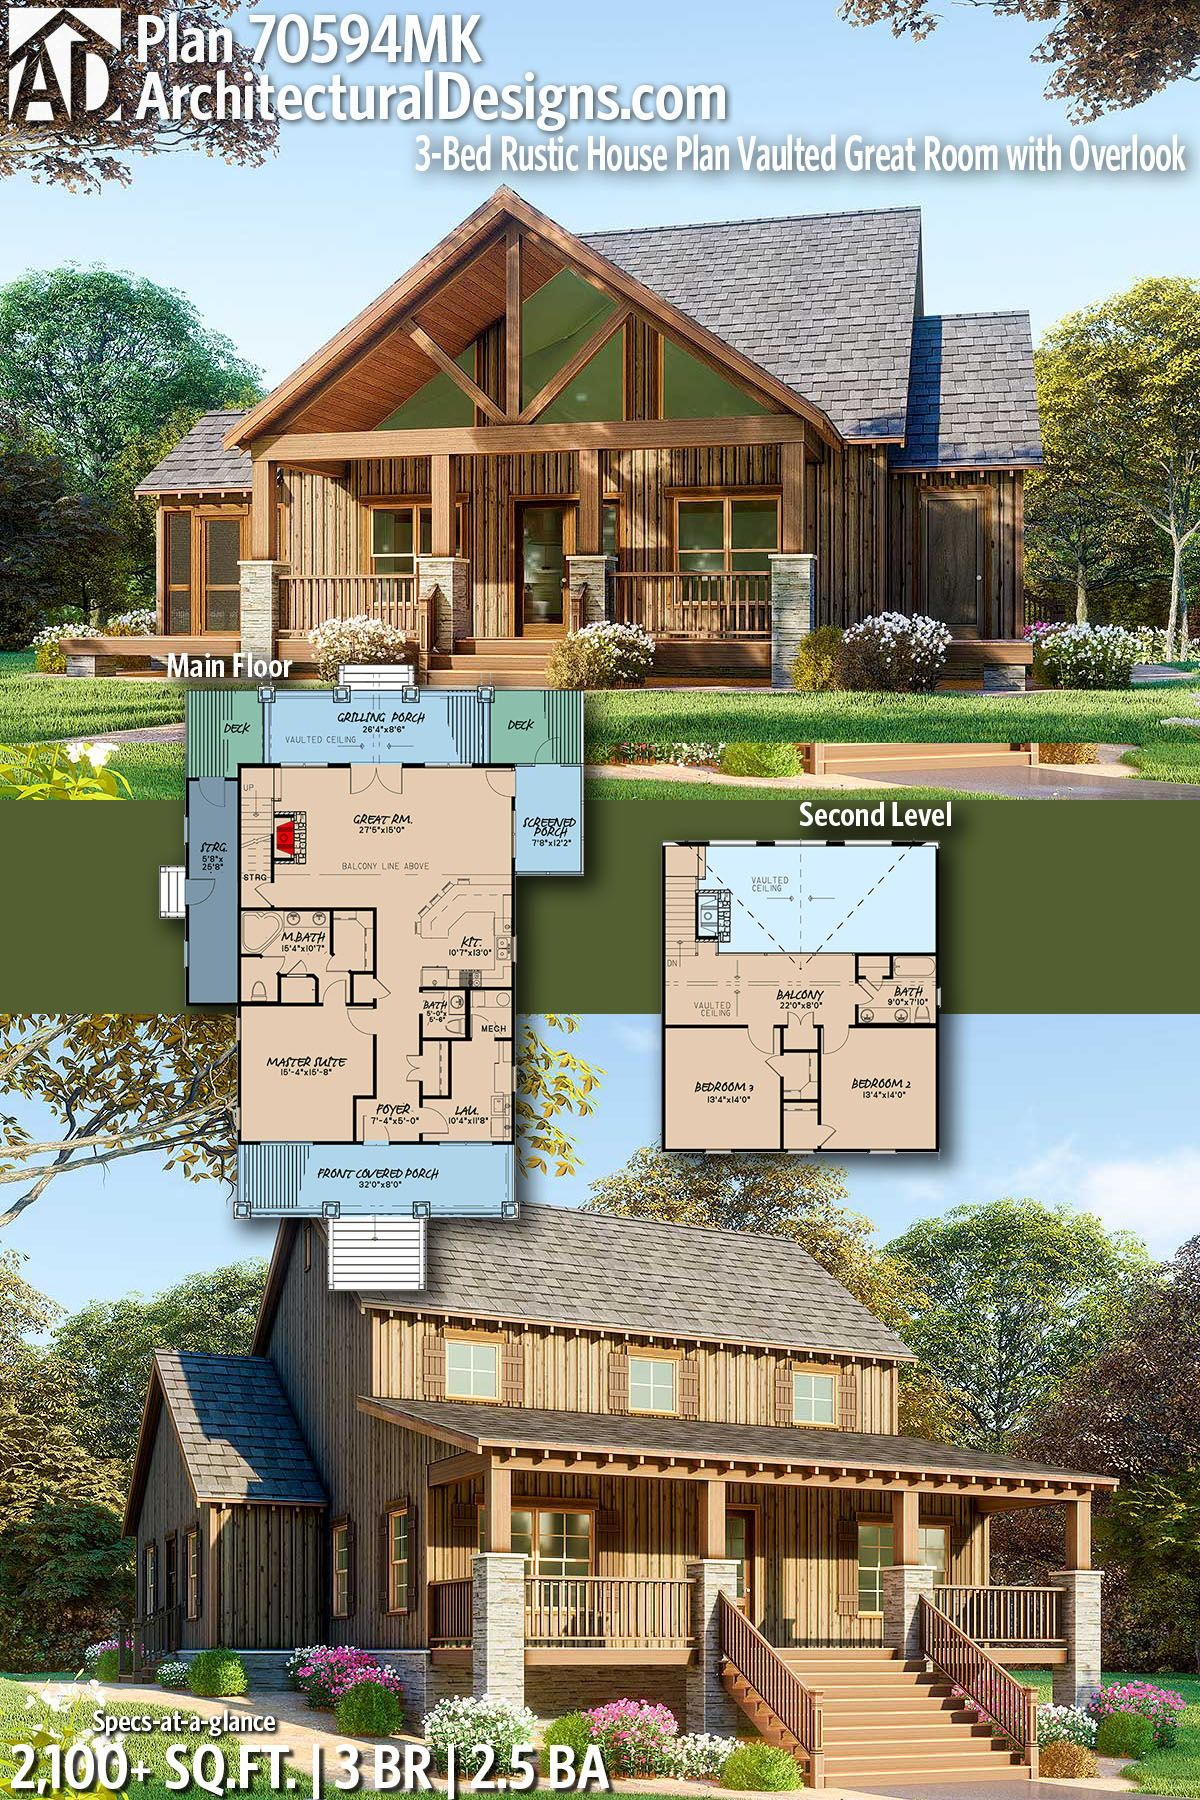 architectural designs rustic house plan 70594mk with 3